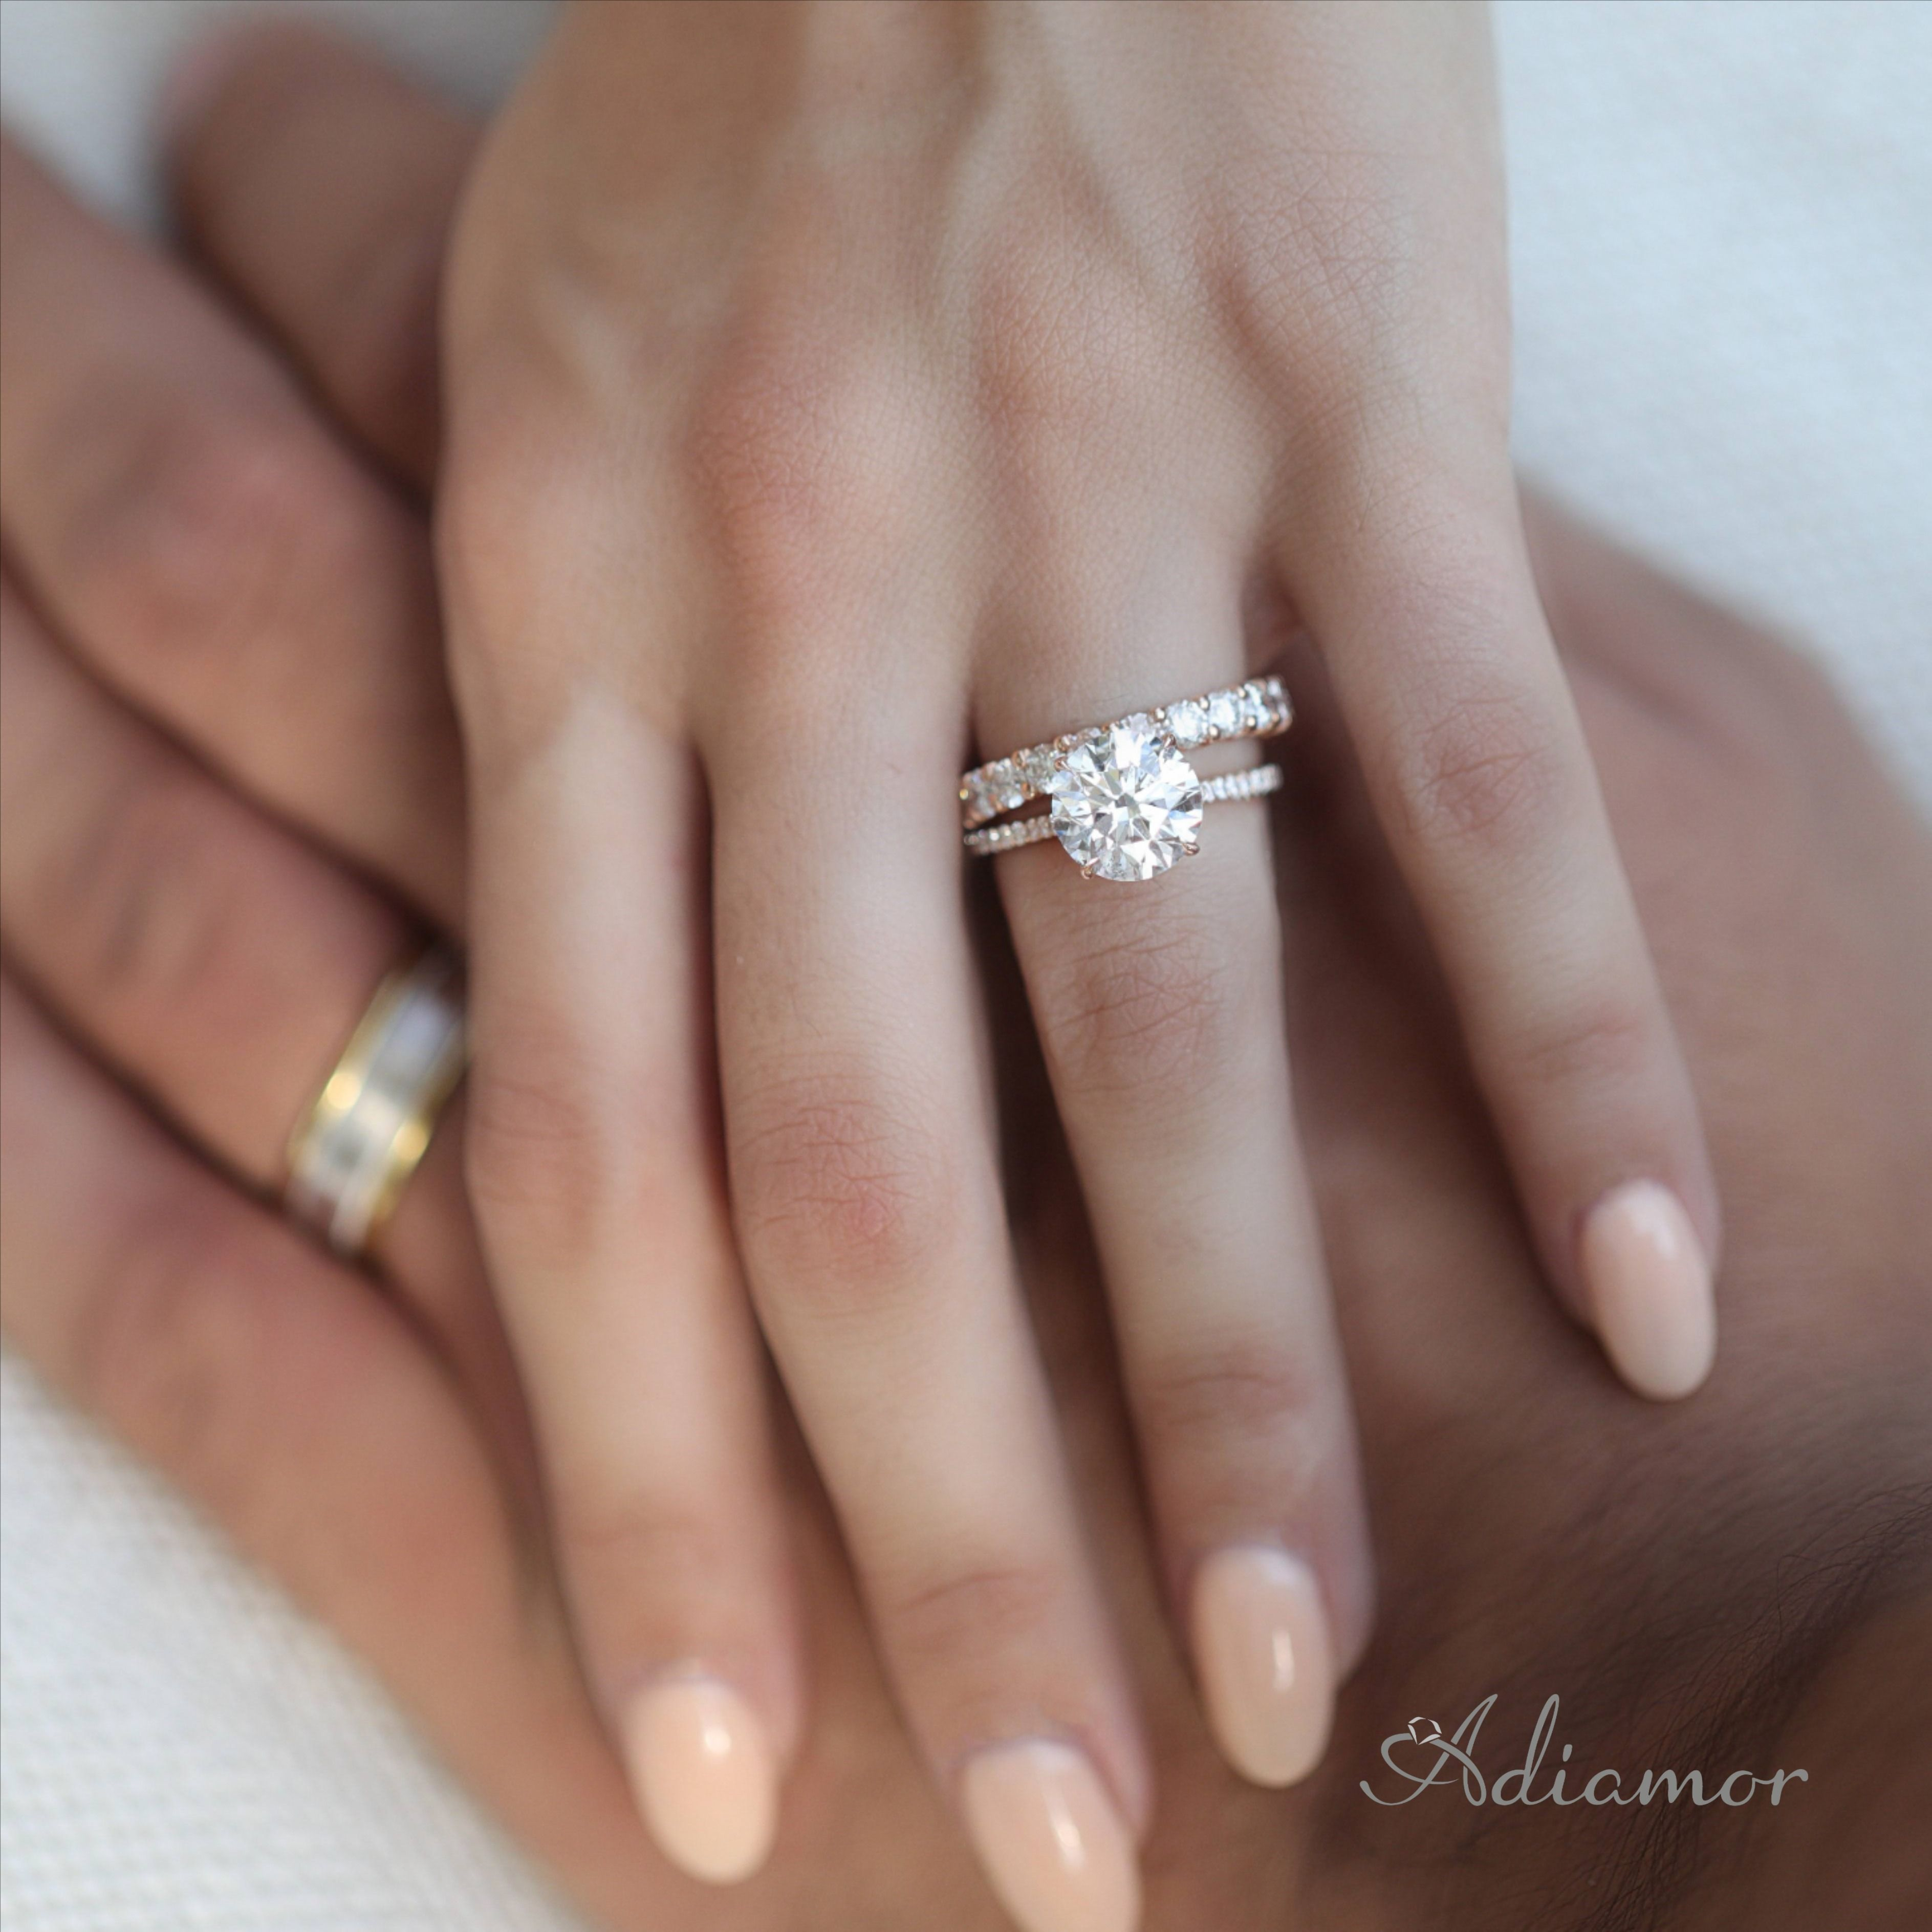 Best Engagement Rings Holiday 2020 Top Engagement Rings Round Diamond Engagement Rings Selling Engagement Ring